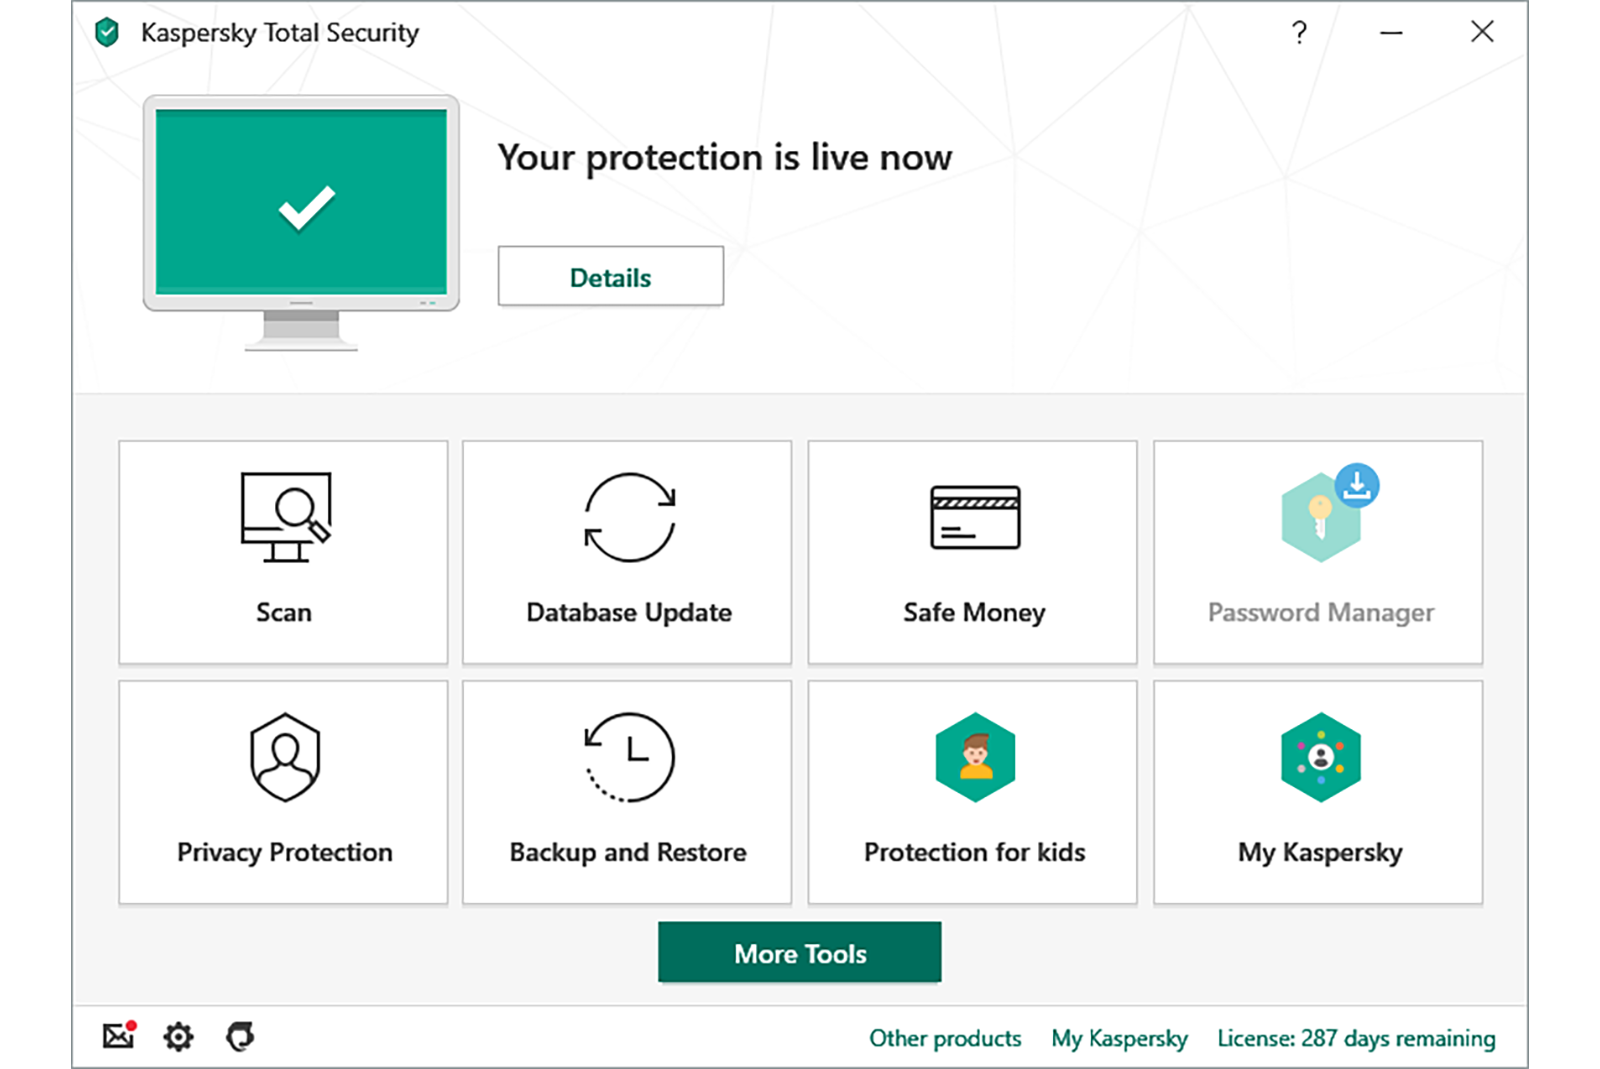 kaspersky-total-security-2021-best-antivirus-software-review.png